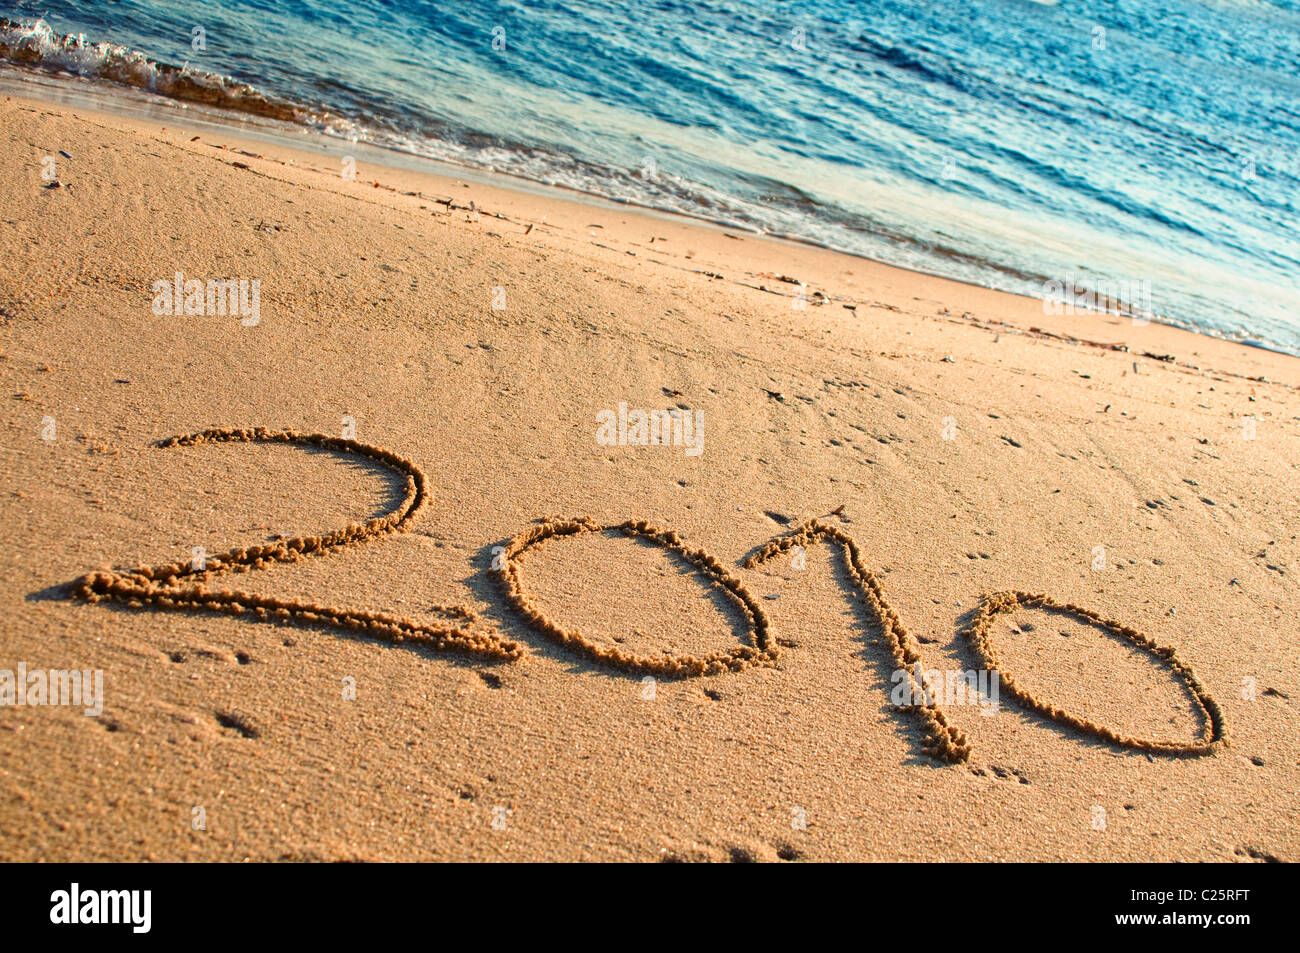 Year 2010 Written in the Sand - Stock Image